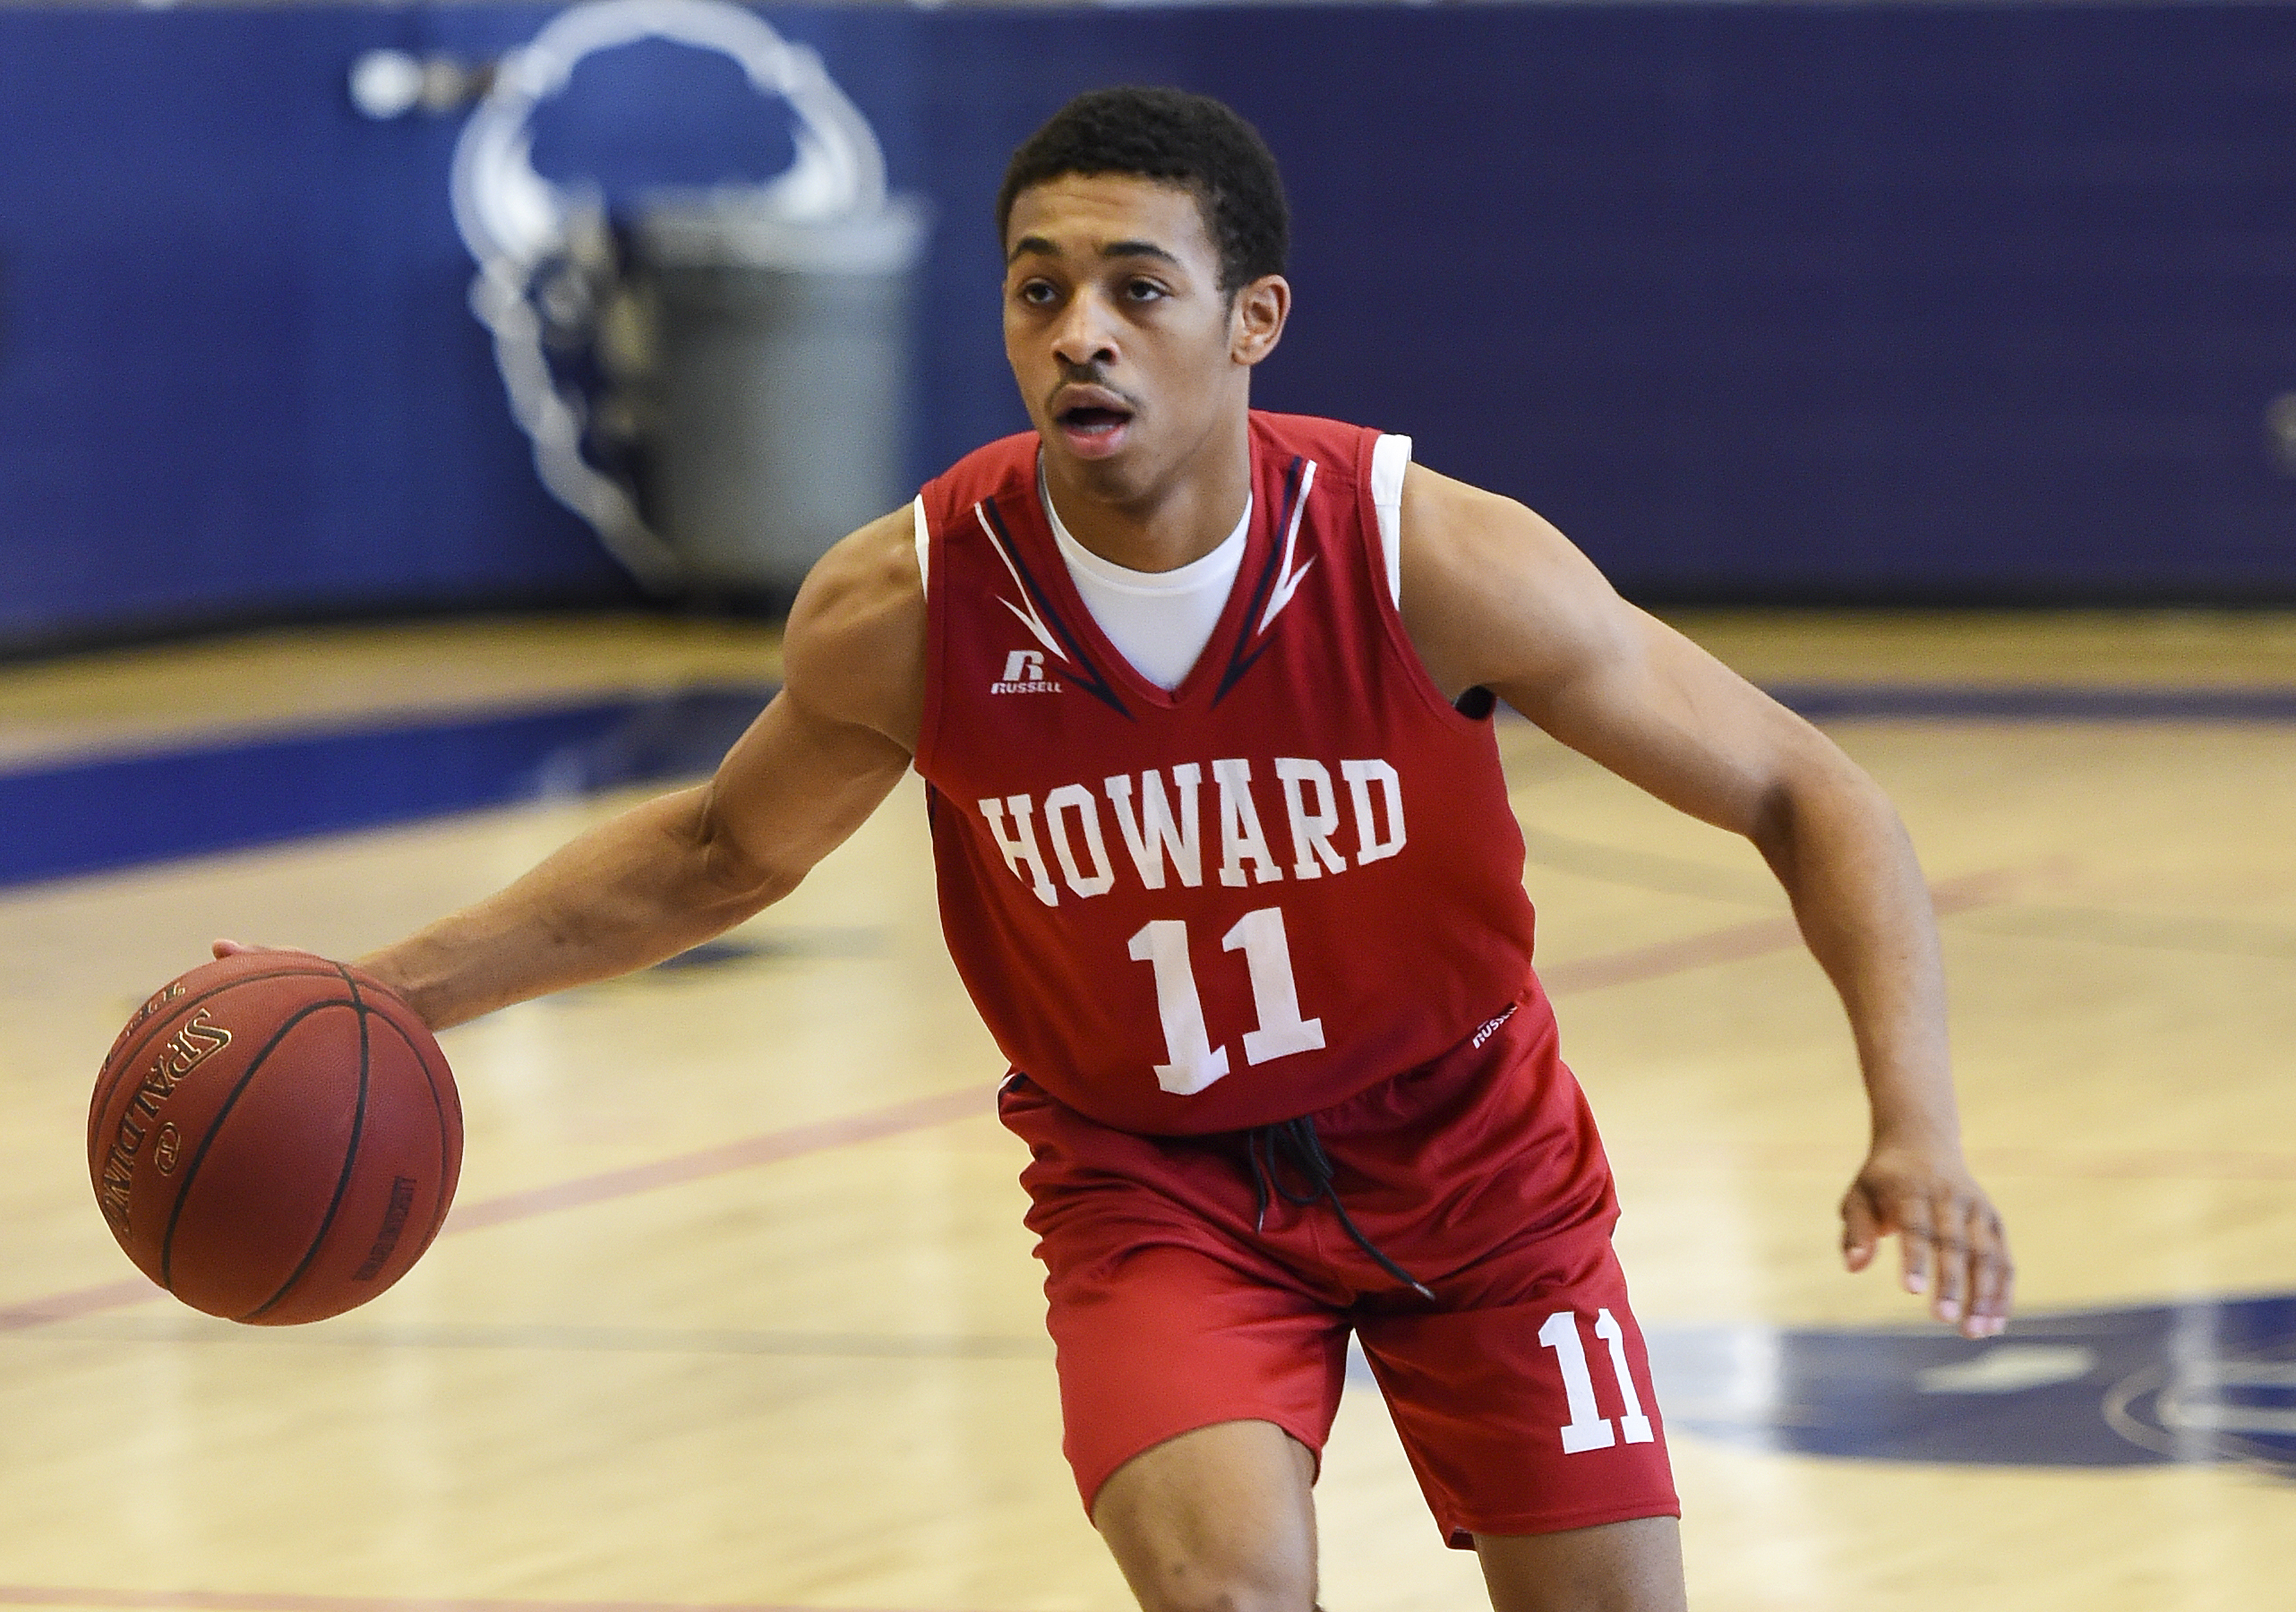 Howard guard James Daniel, (11), currently the leading scorer in Division I college basketball, works out at school on December 11, 2015 in Washington, DC.